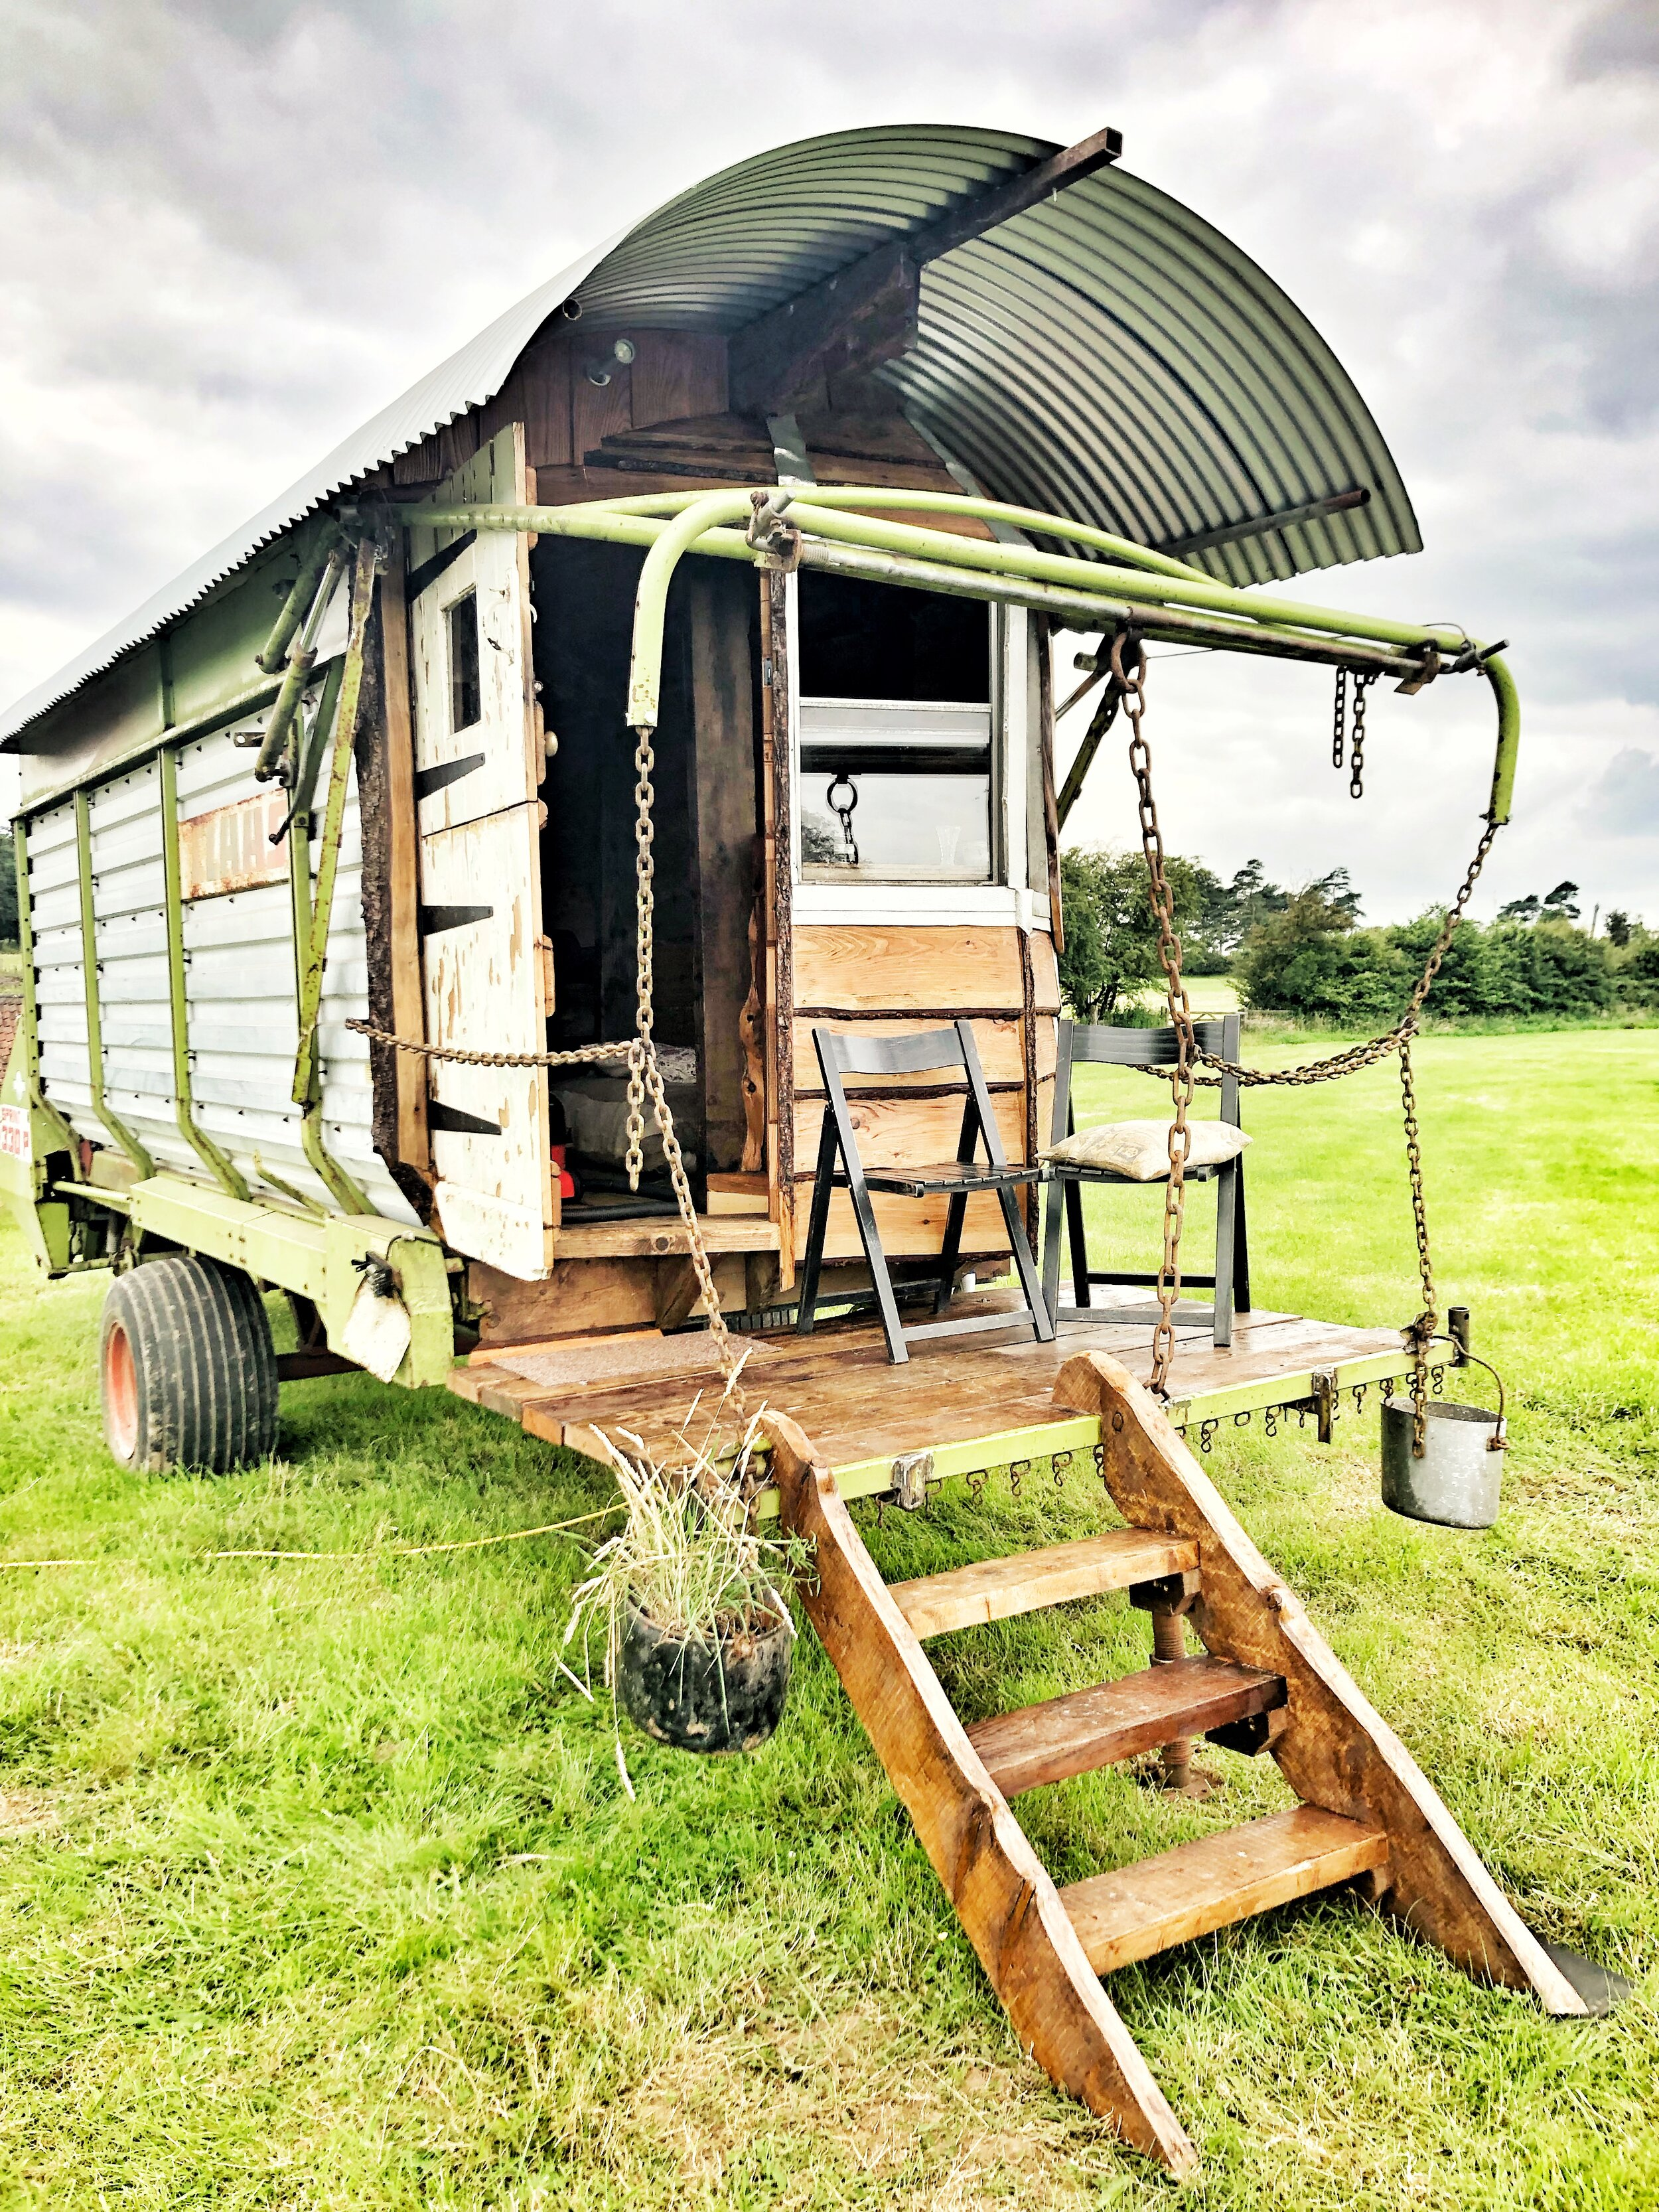 The Wagon … - Our latest addition to the farm is our wagon, once a Claas Forage Wagon, now a beautiful kingsize boudoir with balcony to sip your G&Ts and watch the sunset. Contact - katie@fernhill-farm.co.uk for availability